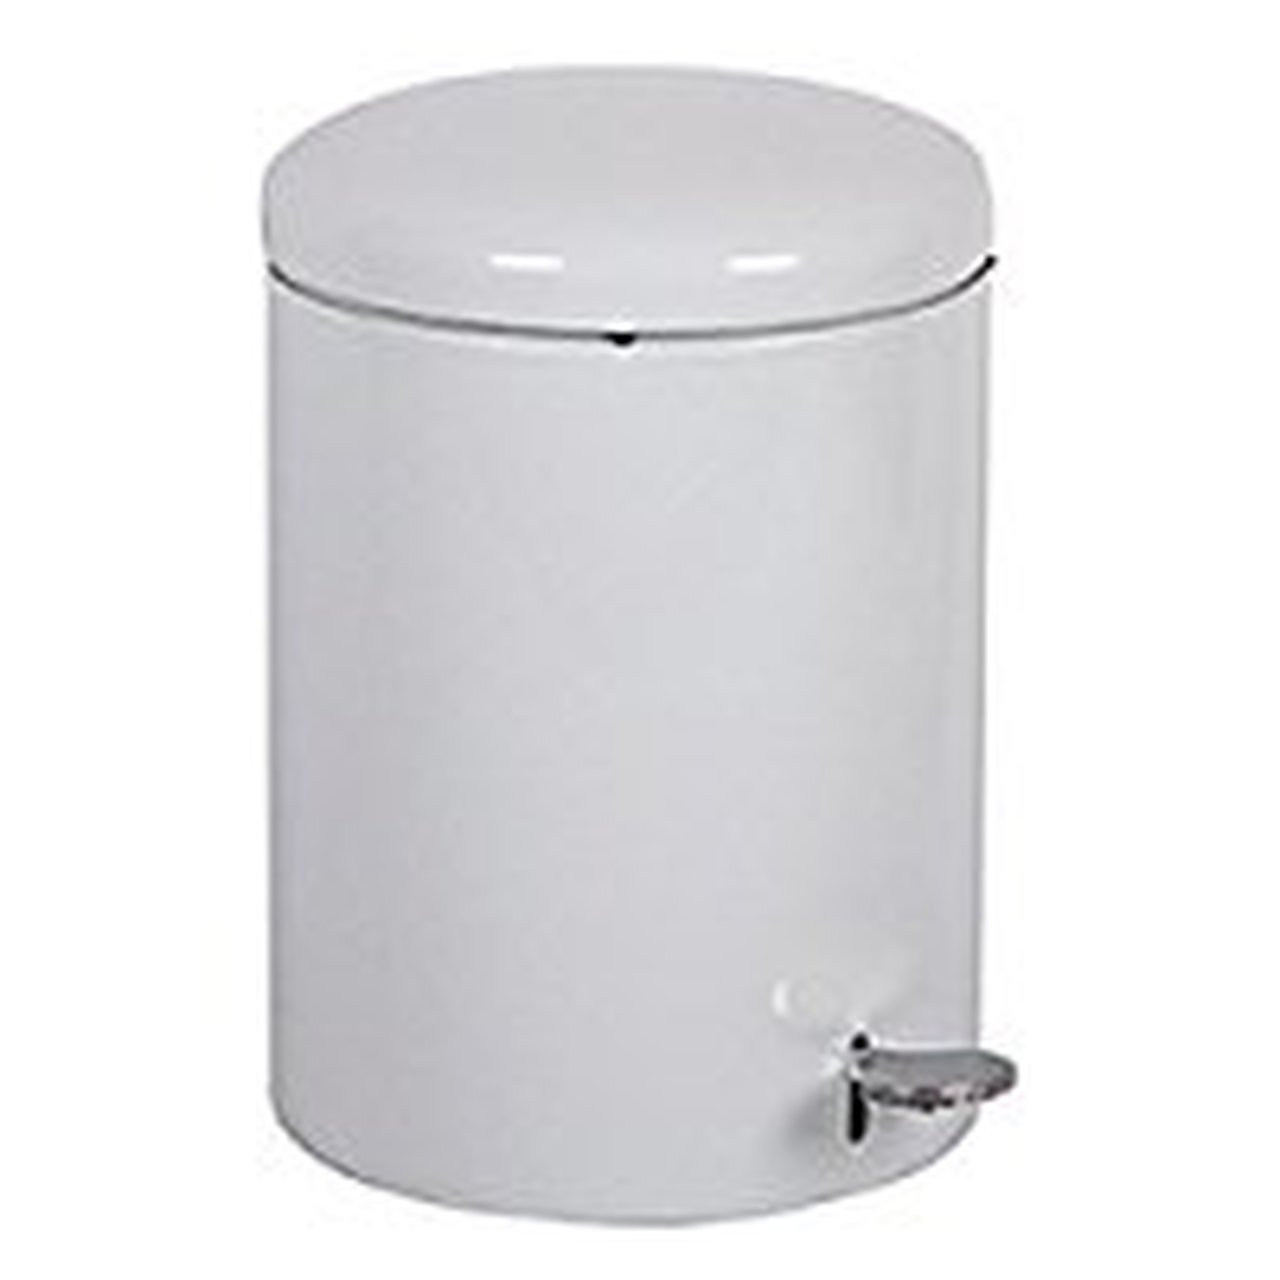 Witt 2240WH Step On Metal Biohazard Waste Container, 4gal Capacity, 11-1/2'' Diameter x 16'' Height, White